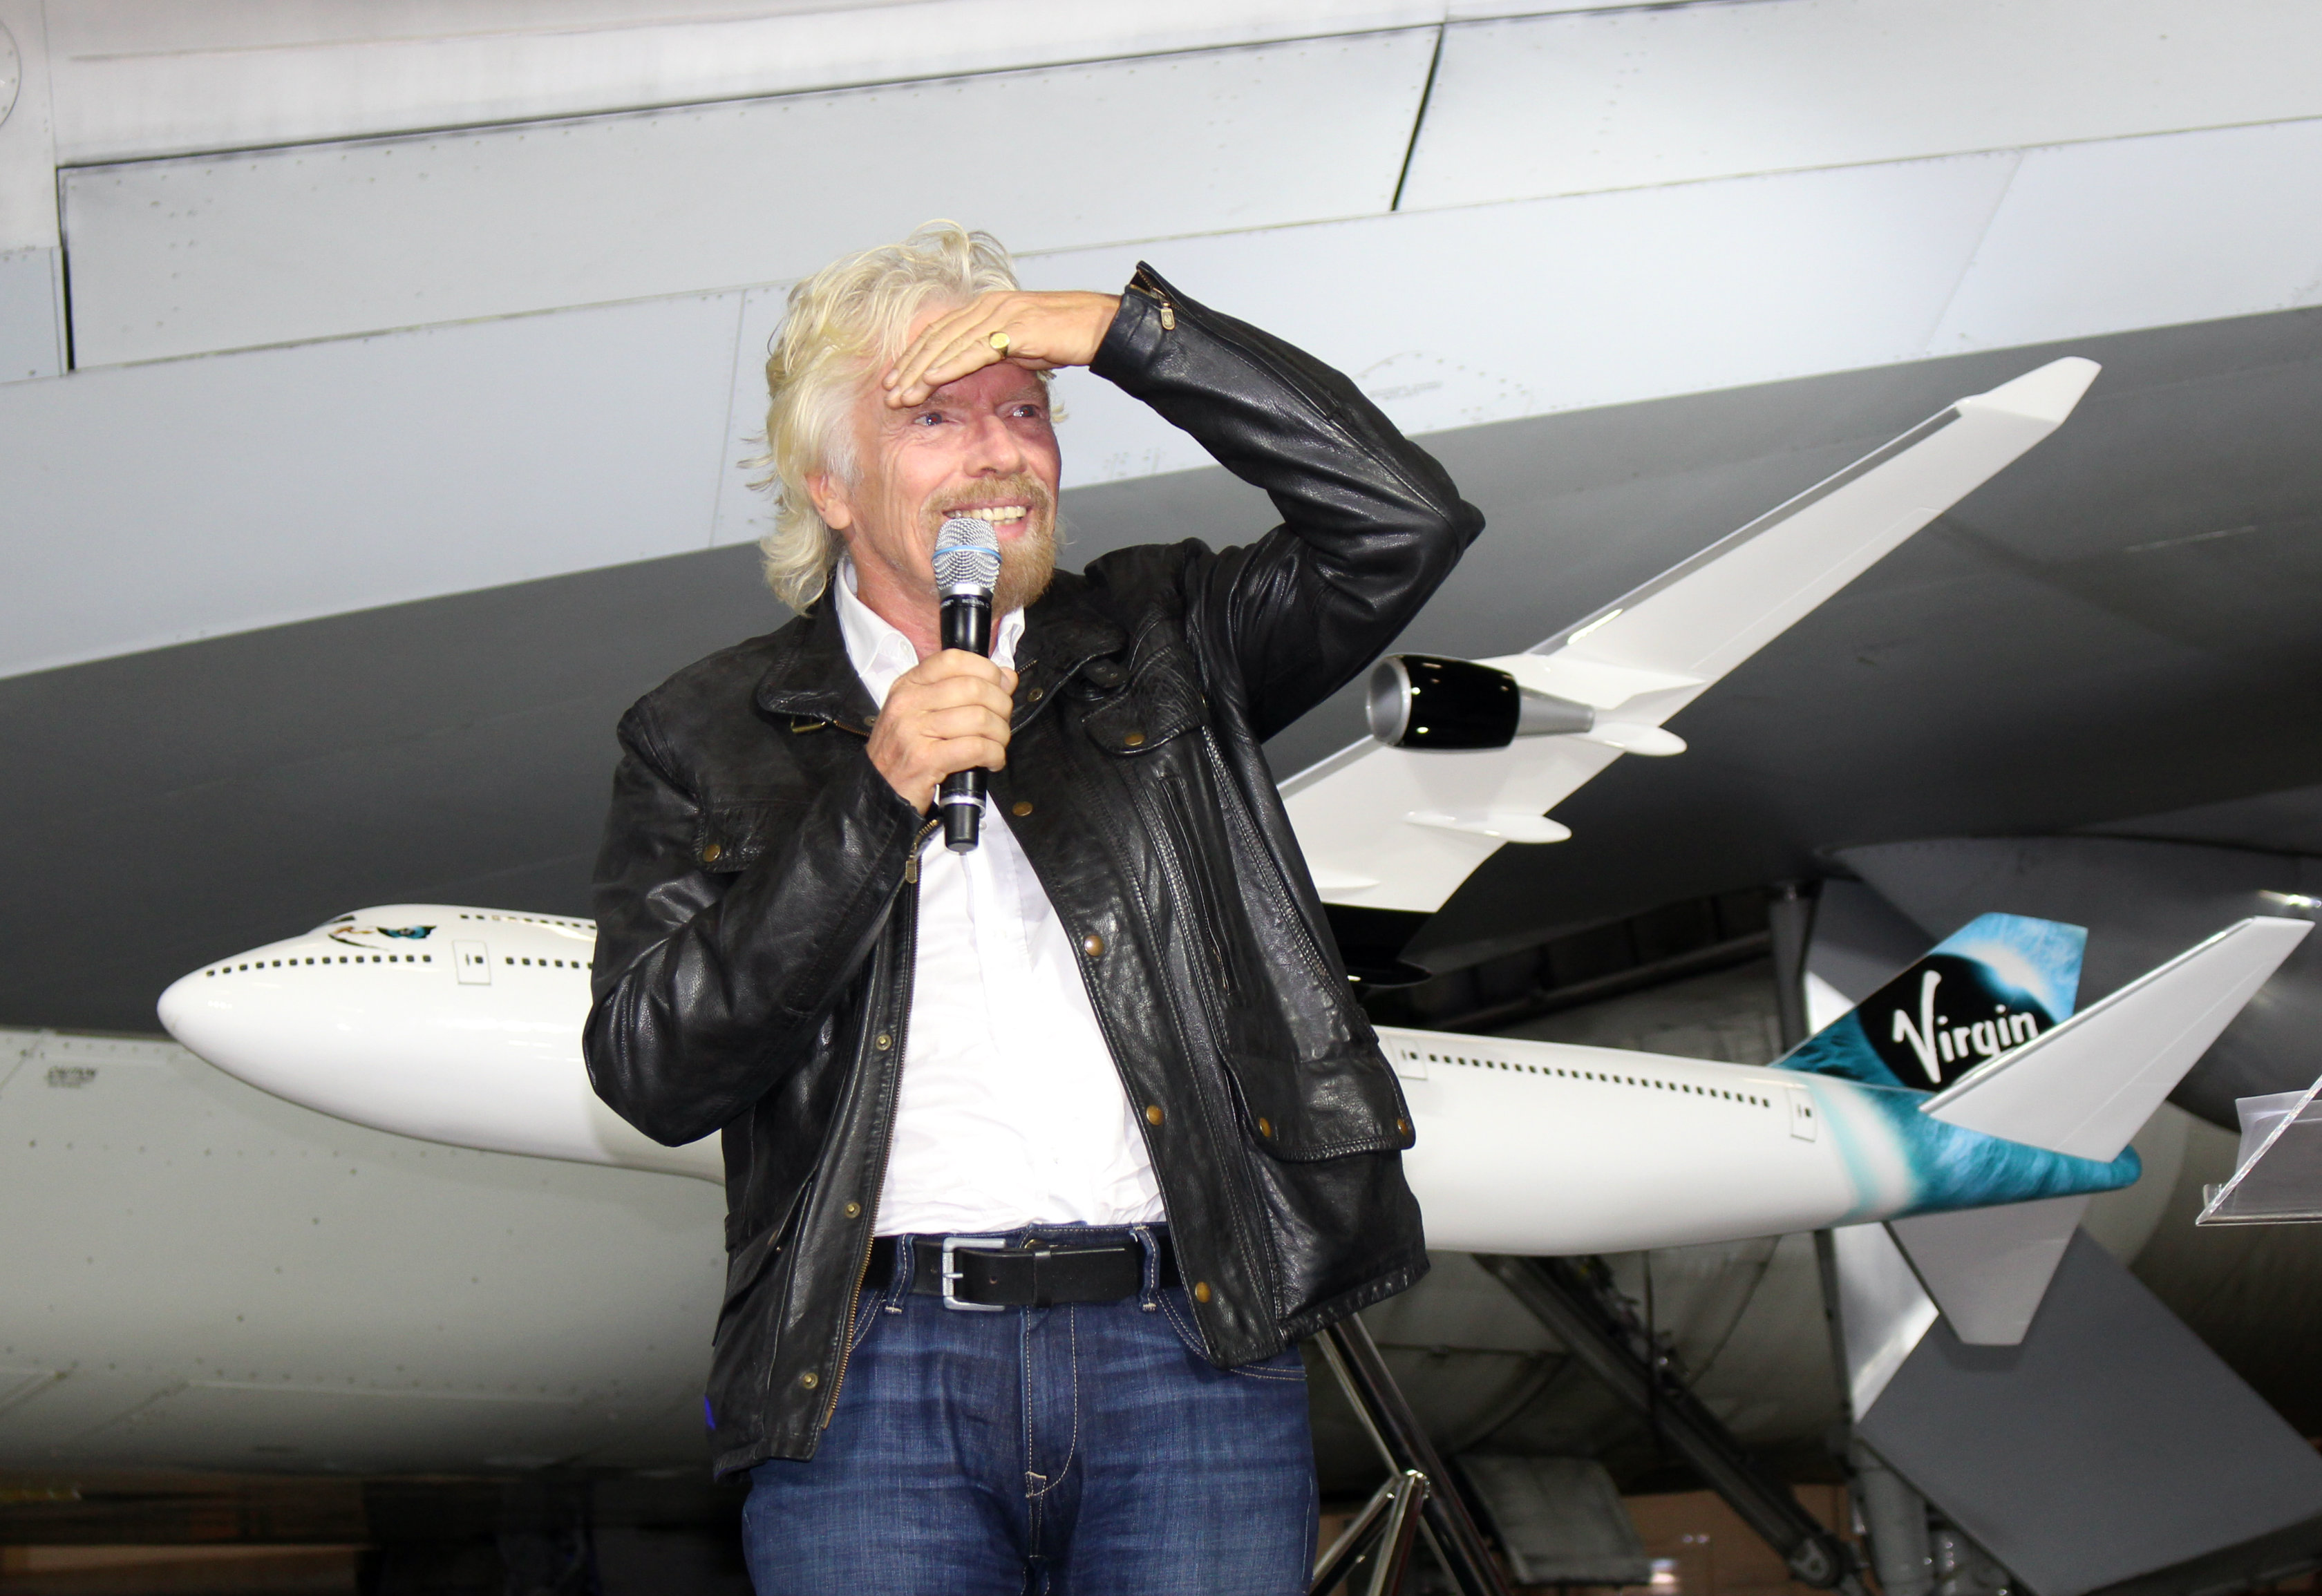 Is Virgin Galactic's future so bright that Sir Richard Branson has to wear shades?